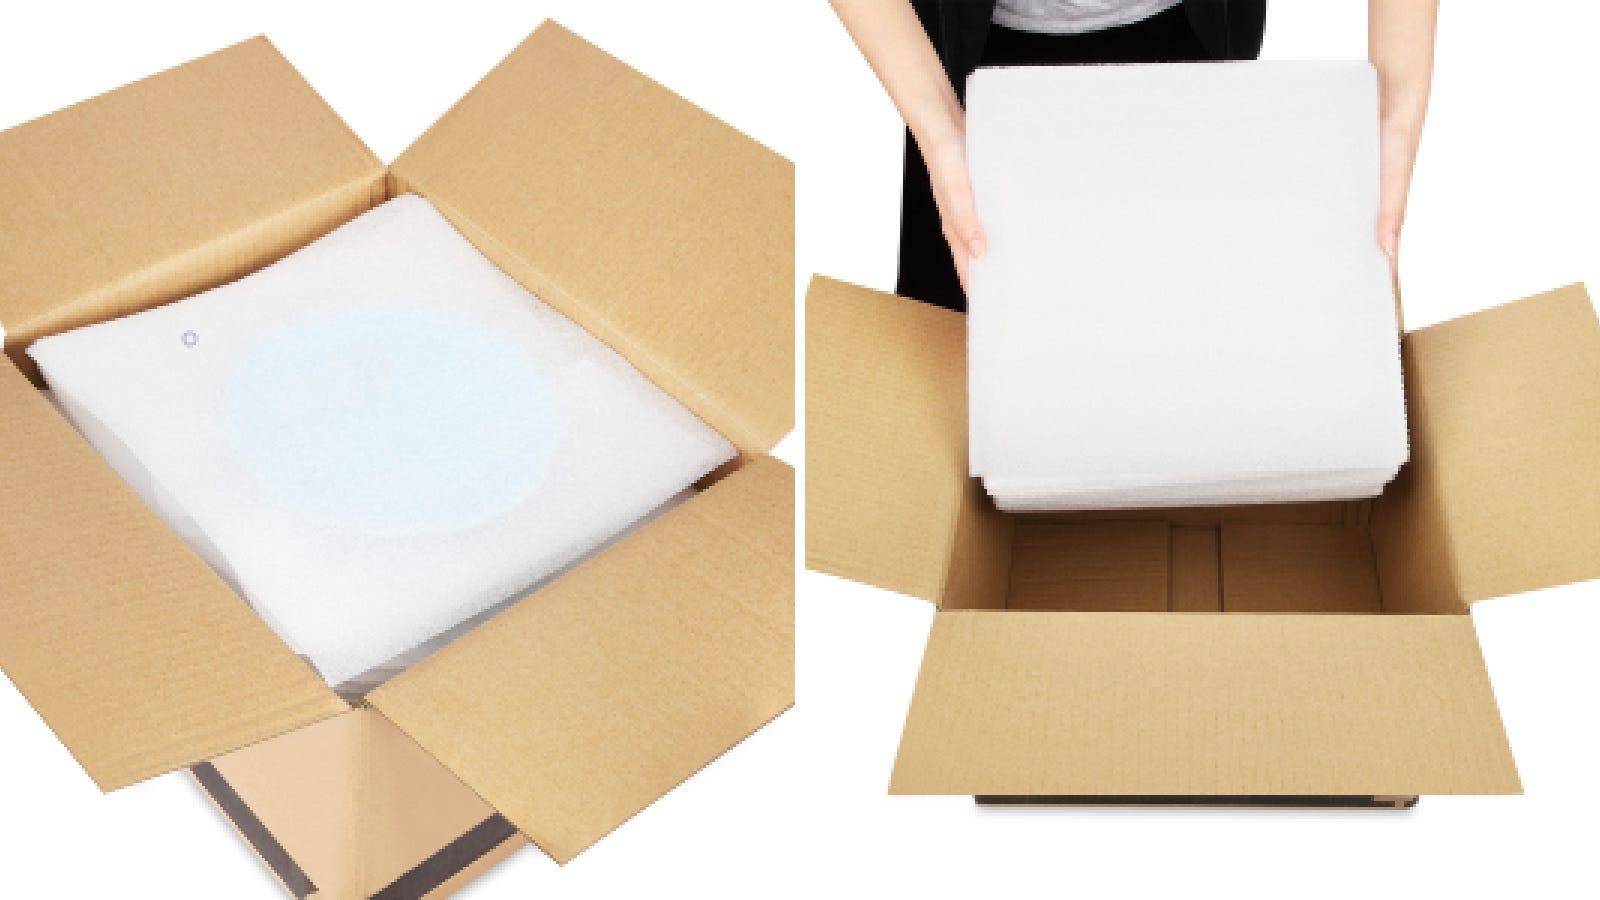 Two images of boxes being packed and layering items with DAT foam sheets.